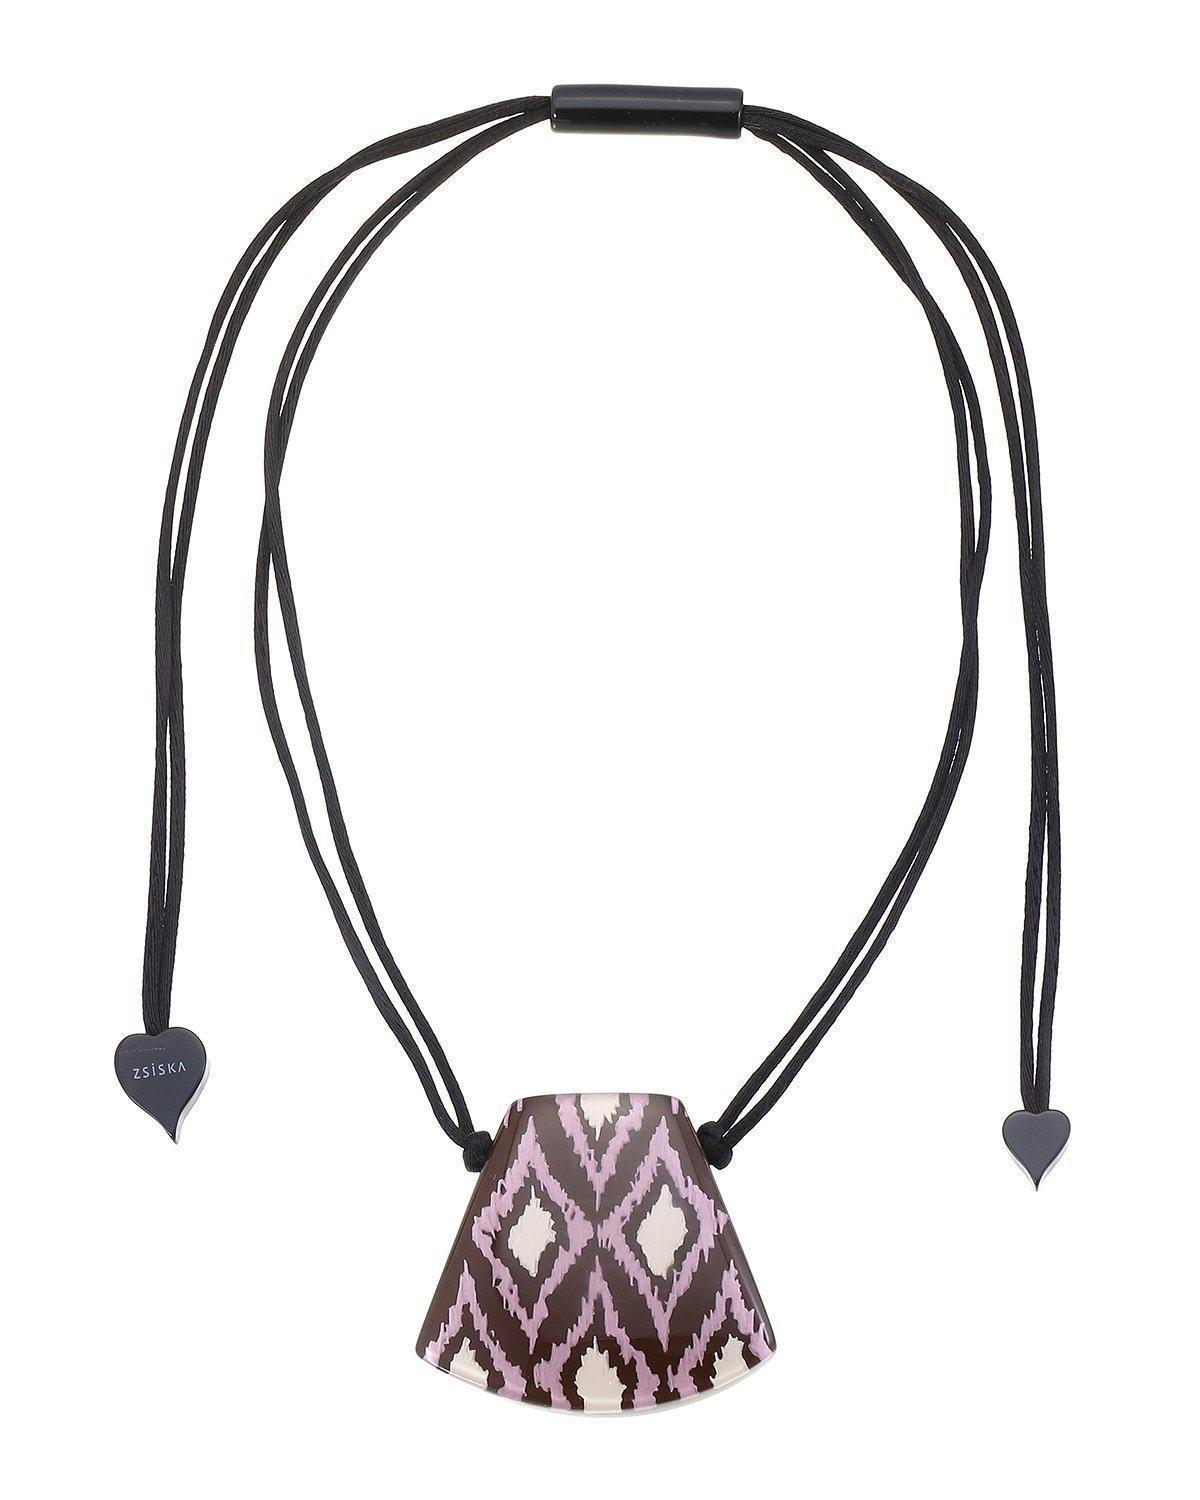 Zsiska Ikat Brown and Purple Pendant Necklace on Adjustable Rope-Jewellery-Zsiska-Temples and Markets